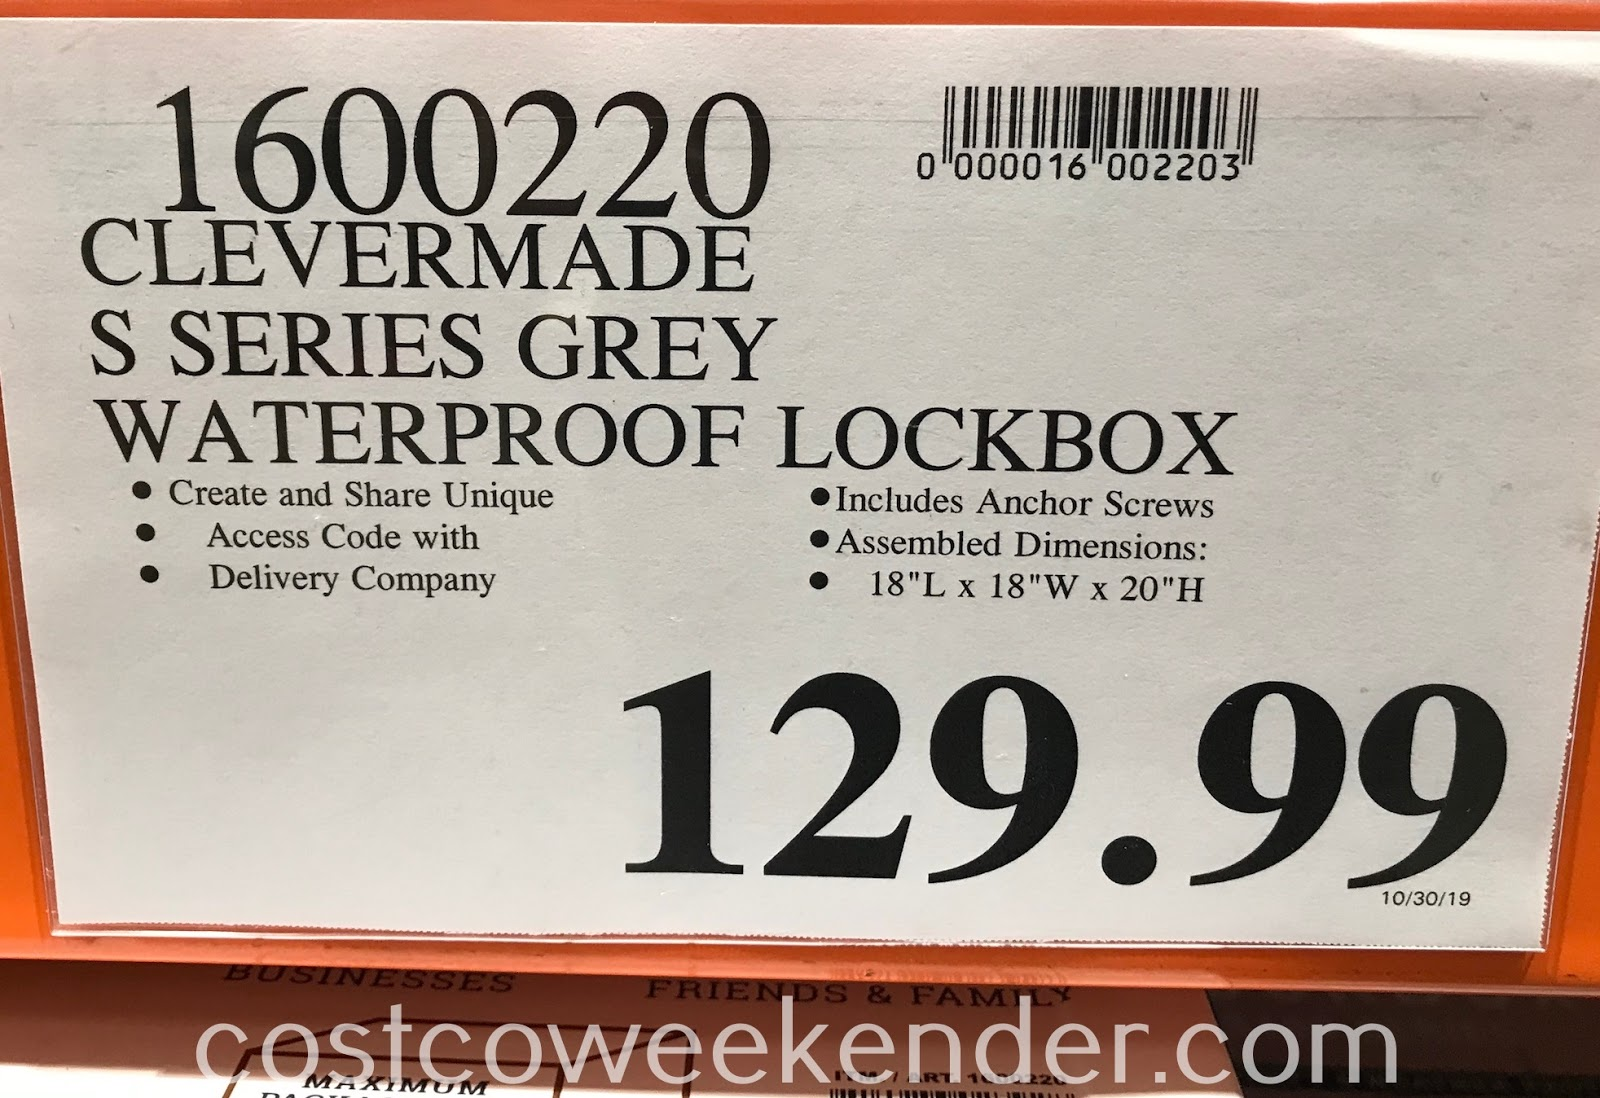 Deal for the CleverMade S100 Series Grey Parcel LockBox at Costco